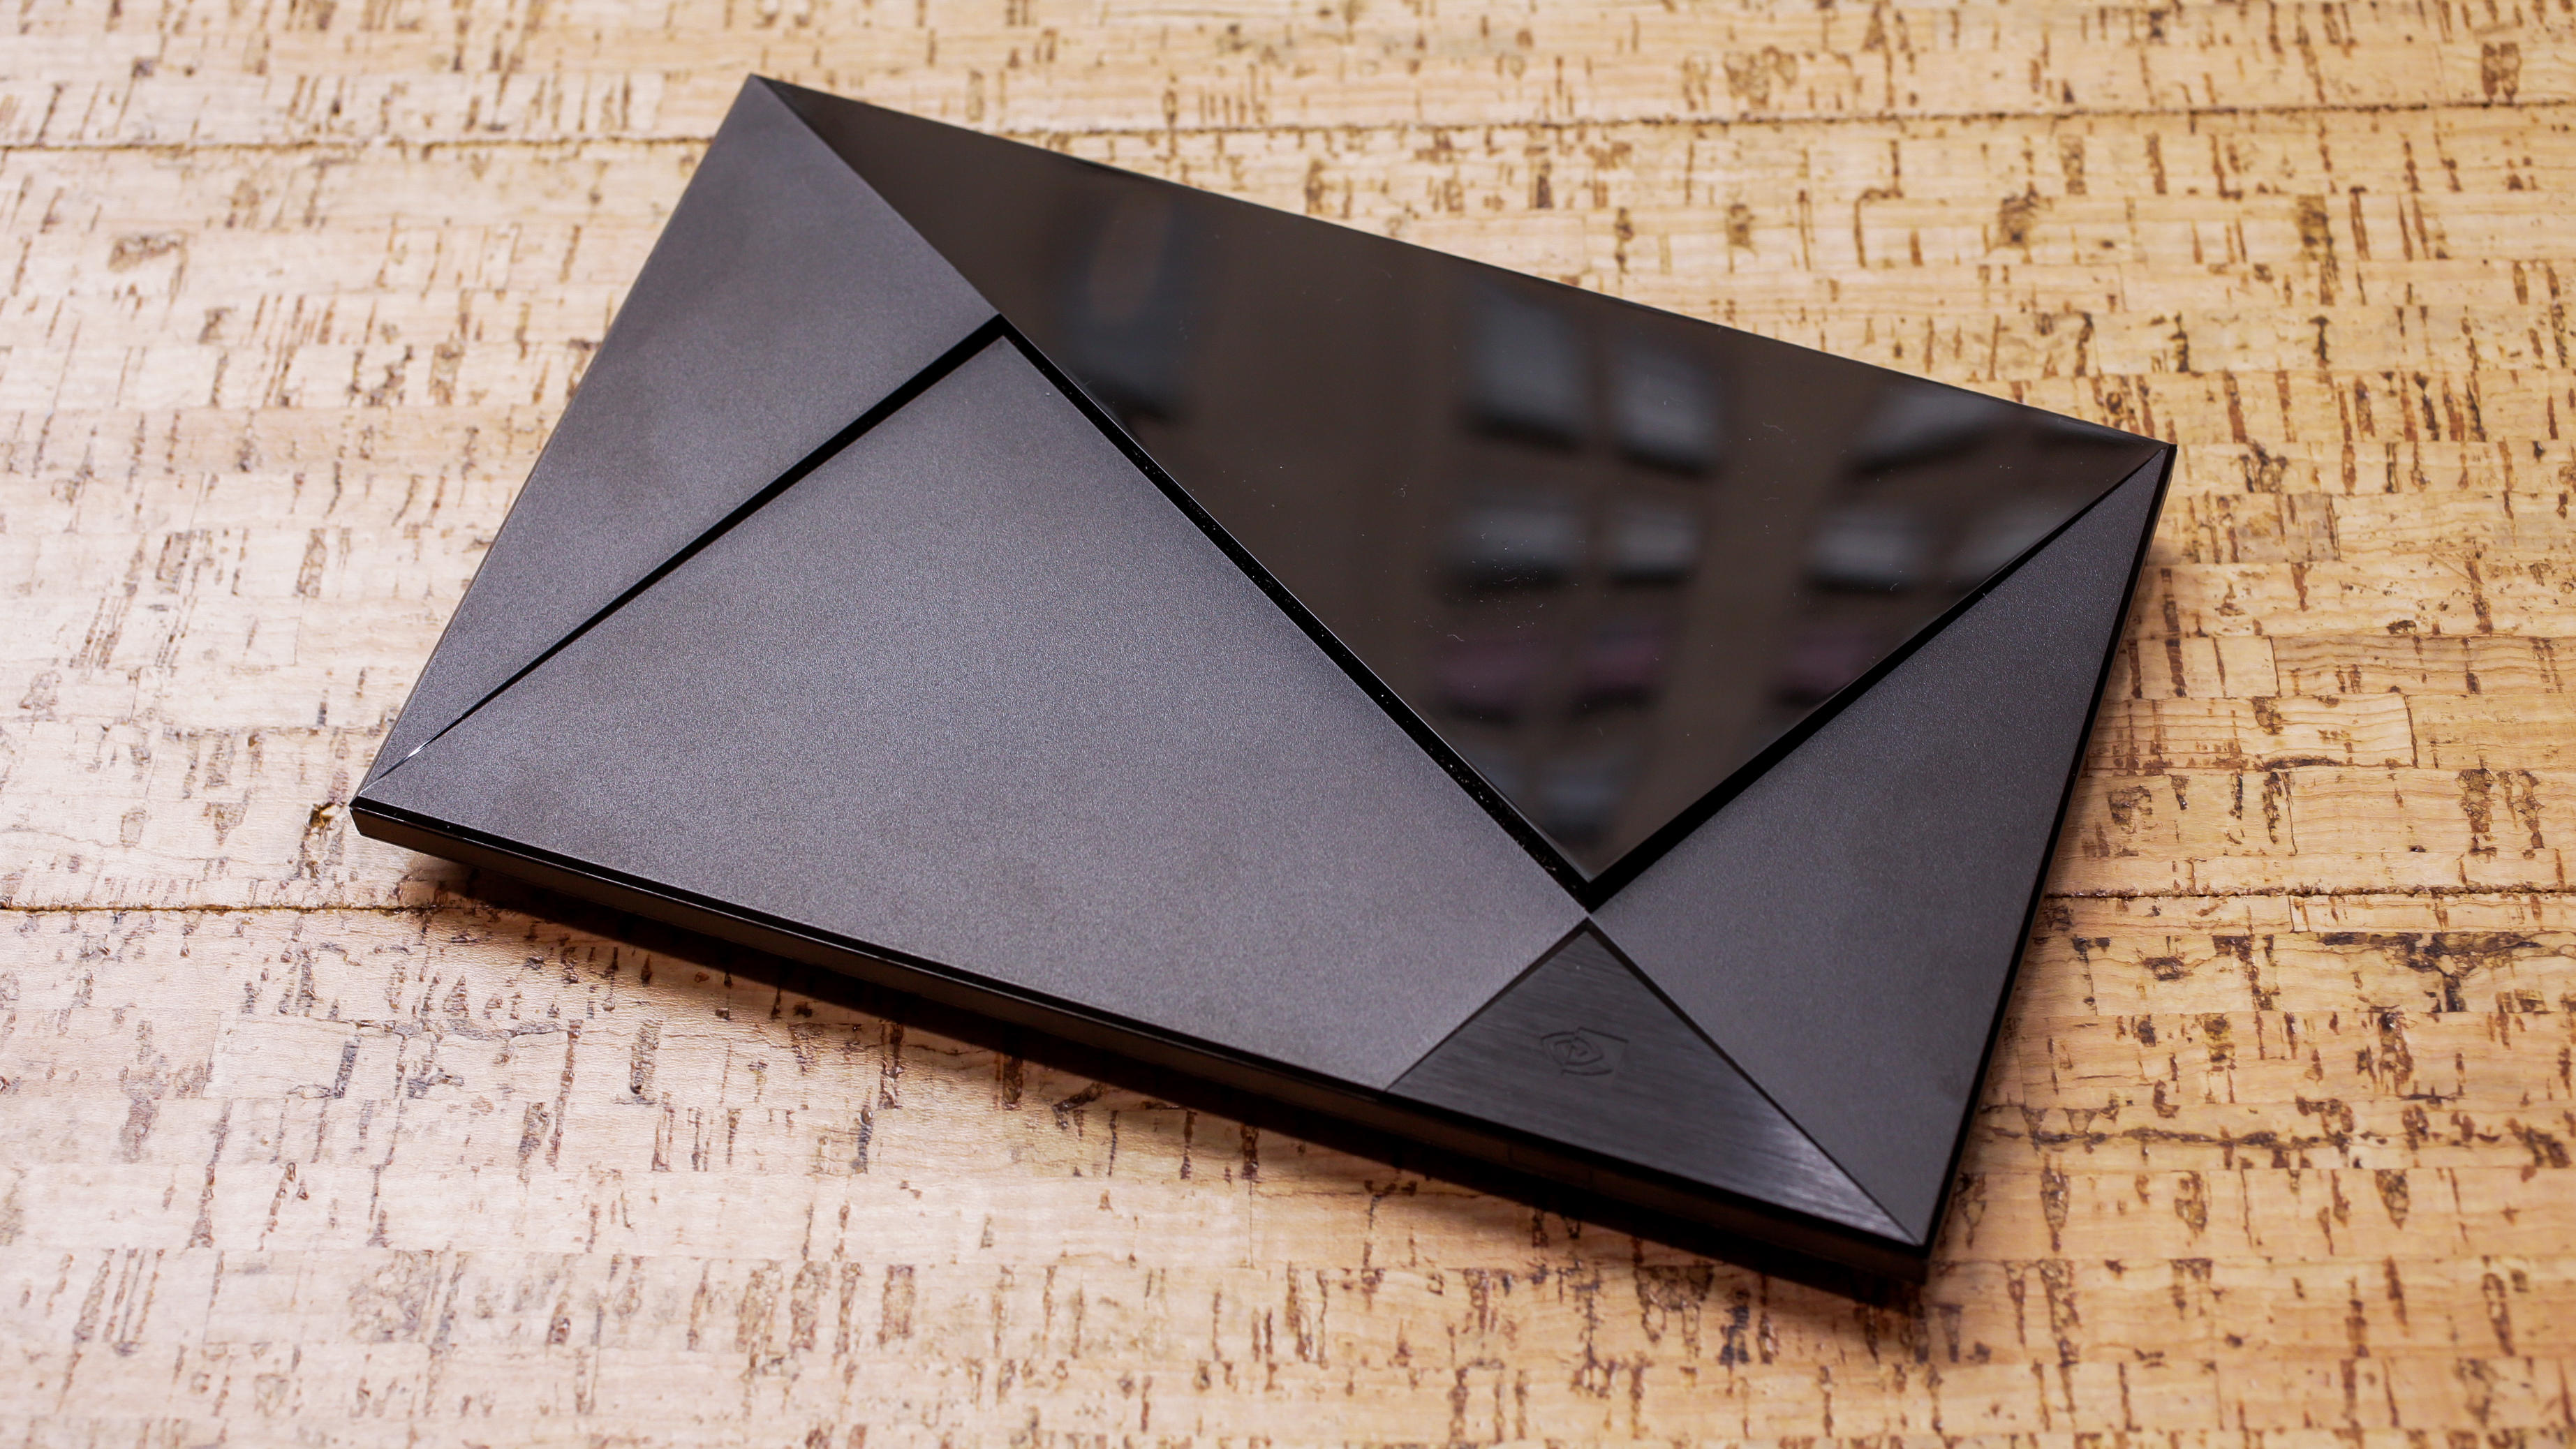 nvidia-shield-android-tv-2015-02.jpg